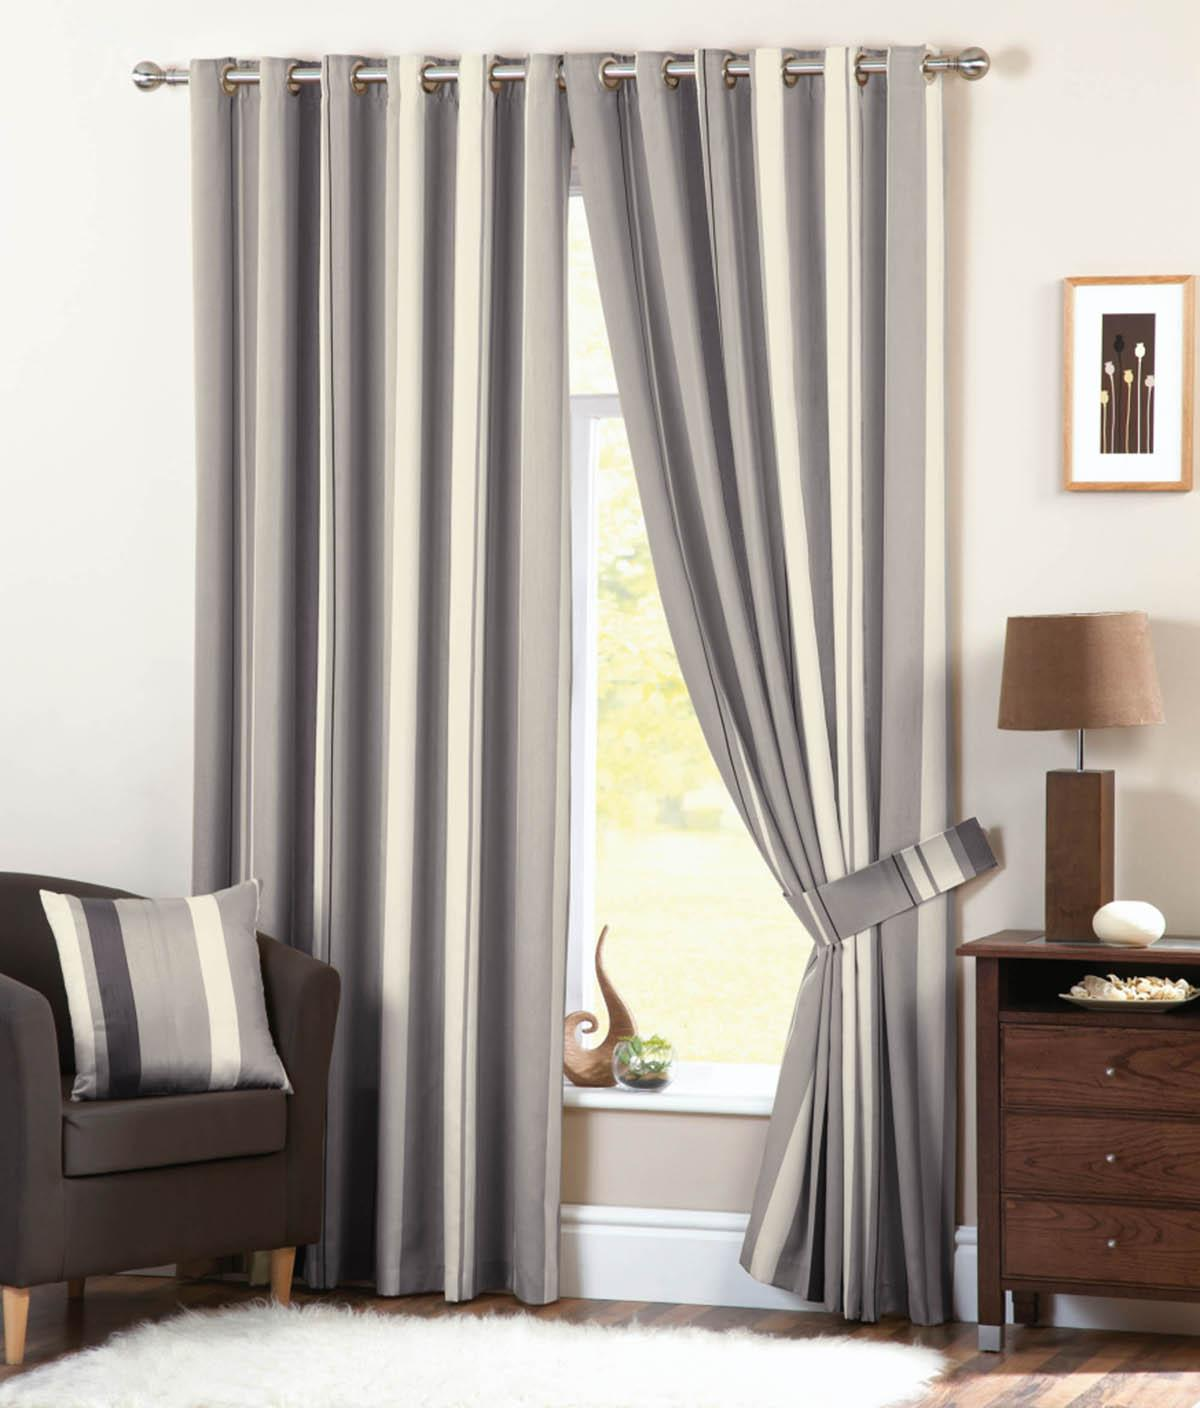 Alluring striped curtains with long curtain and nightlamps also single sofa combined with fluufy rug and lowes mini table